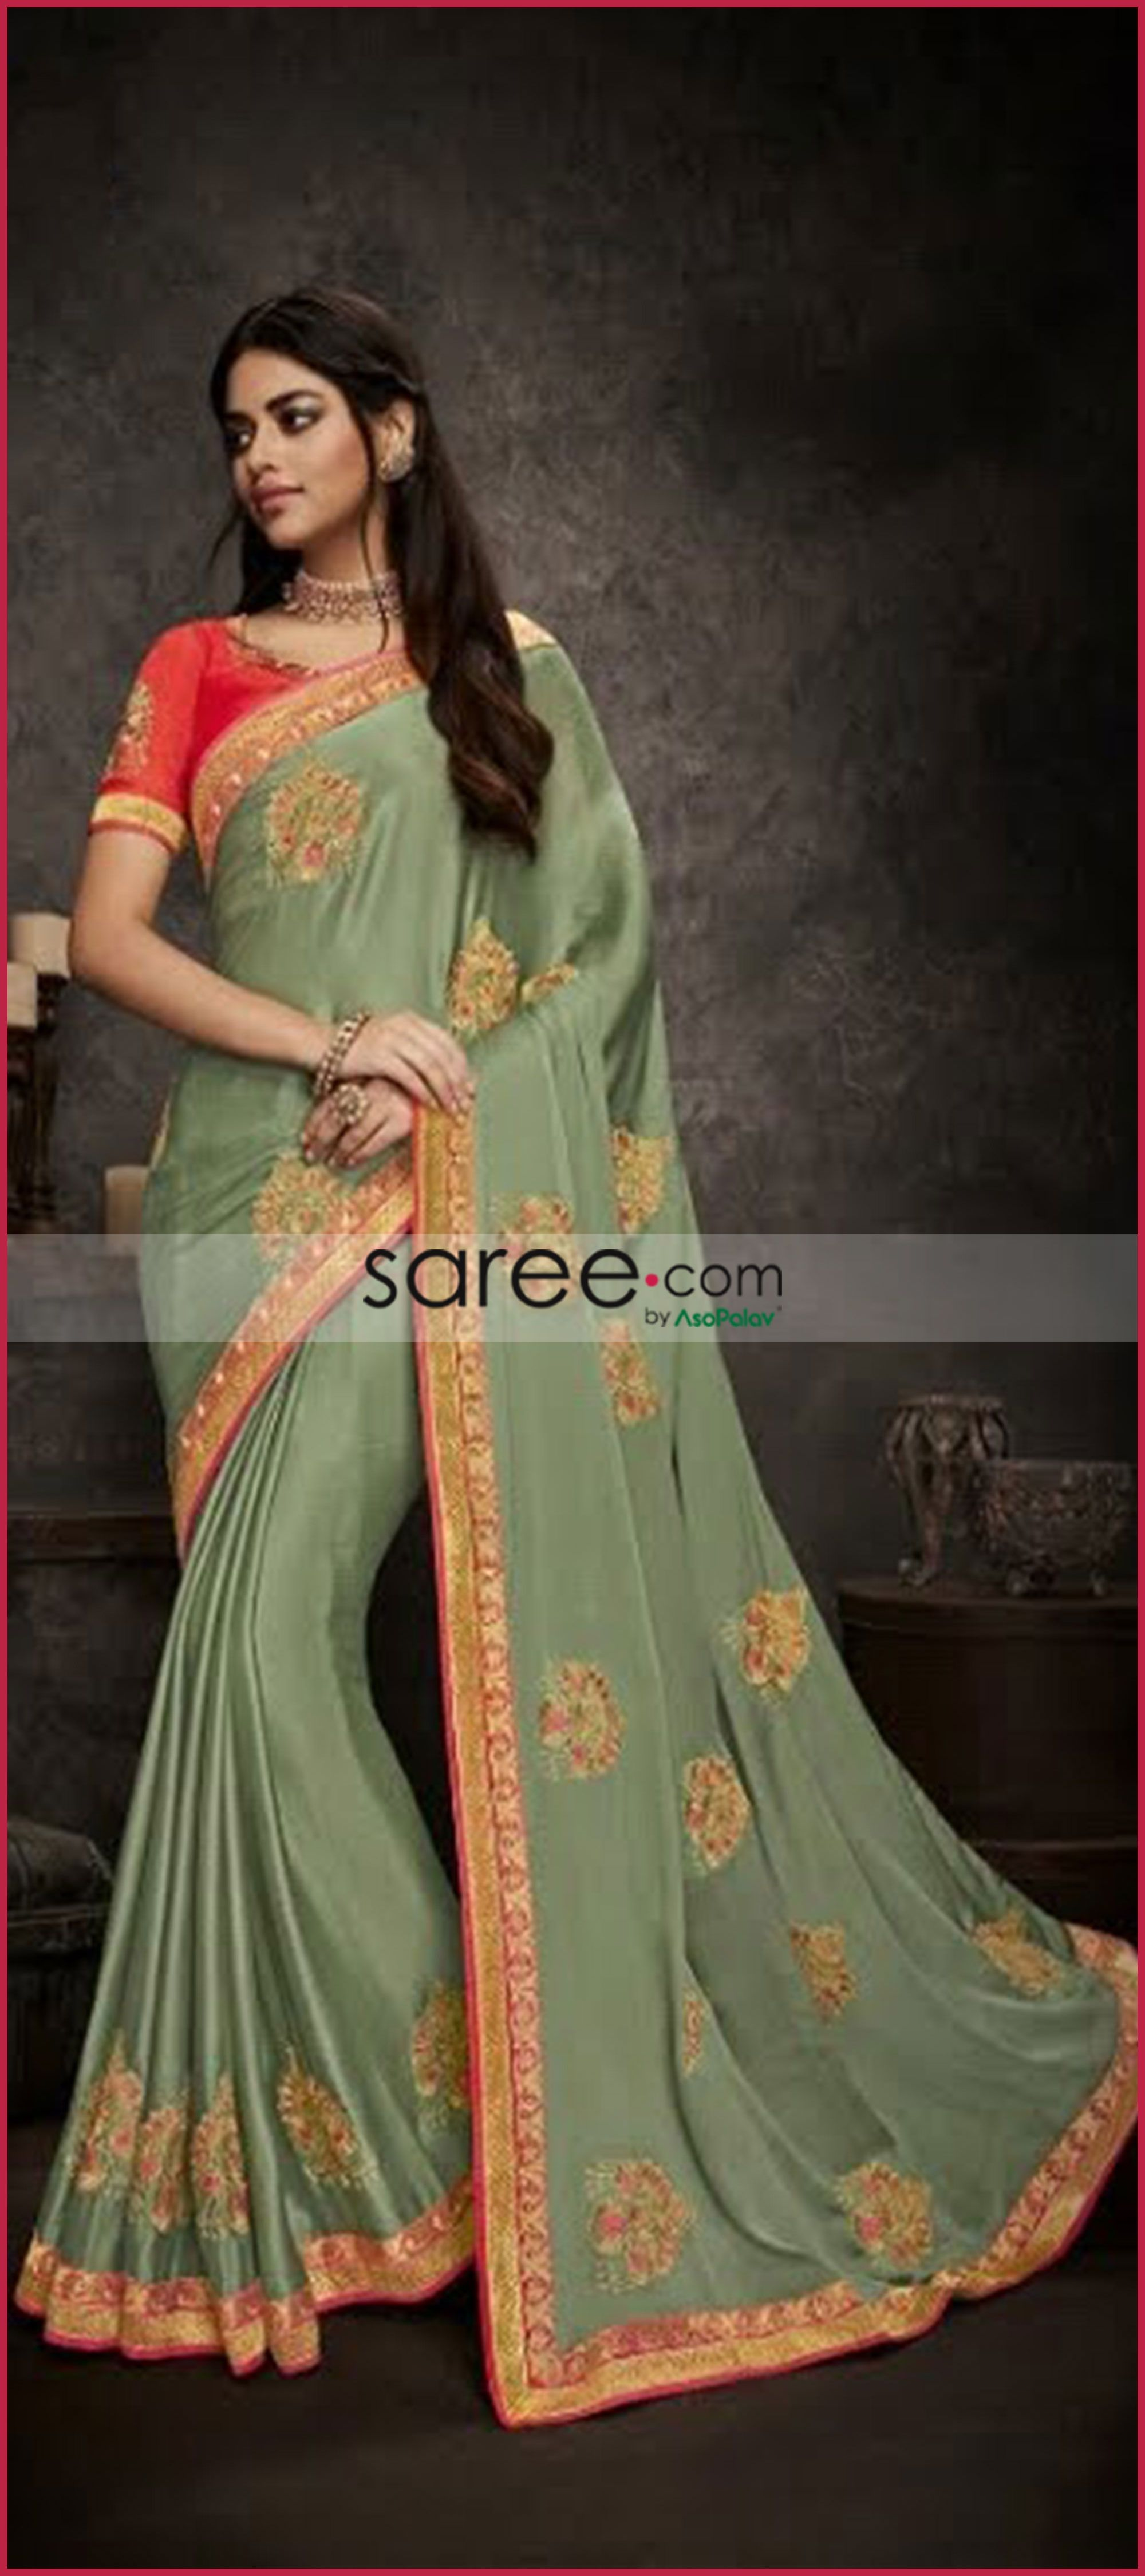 9e54ebef0663f Moss green satin silk plain saree with designer blouse indian jpg 2000x4500  Silk moss indian clothing